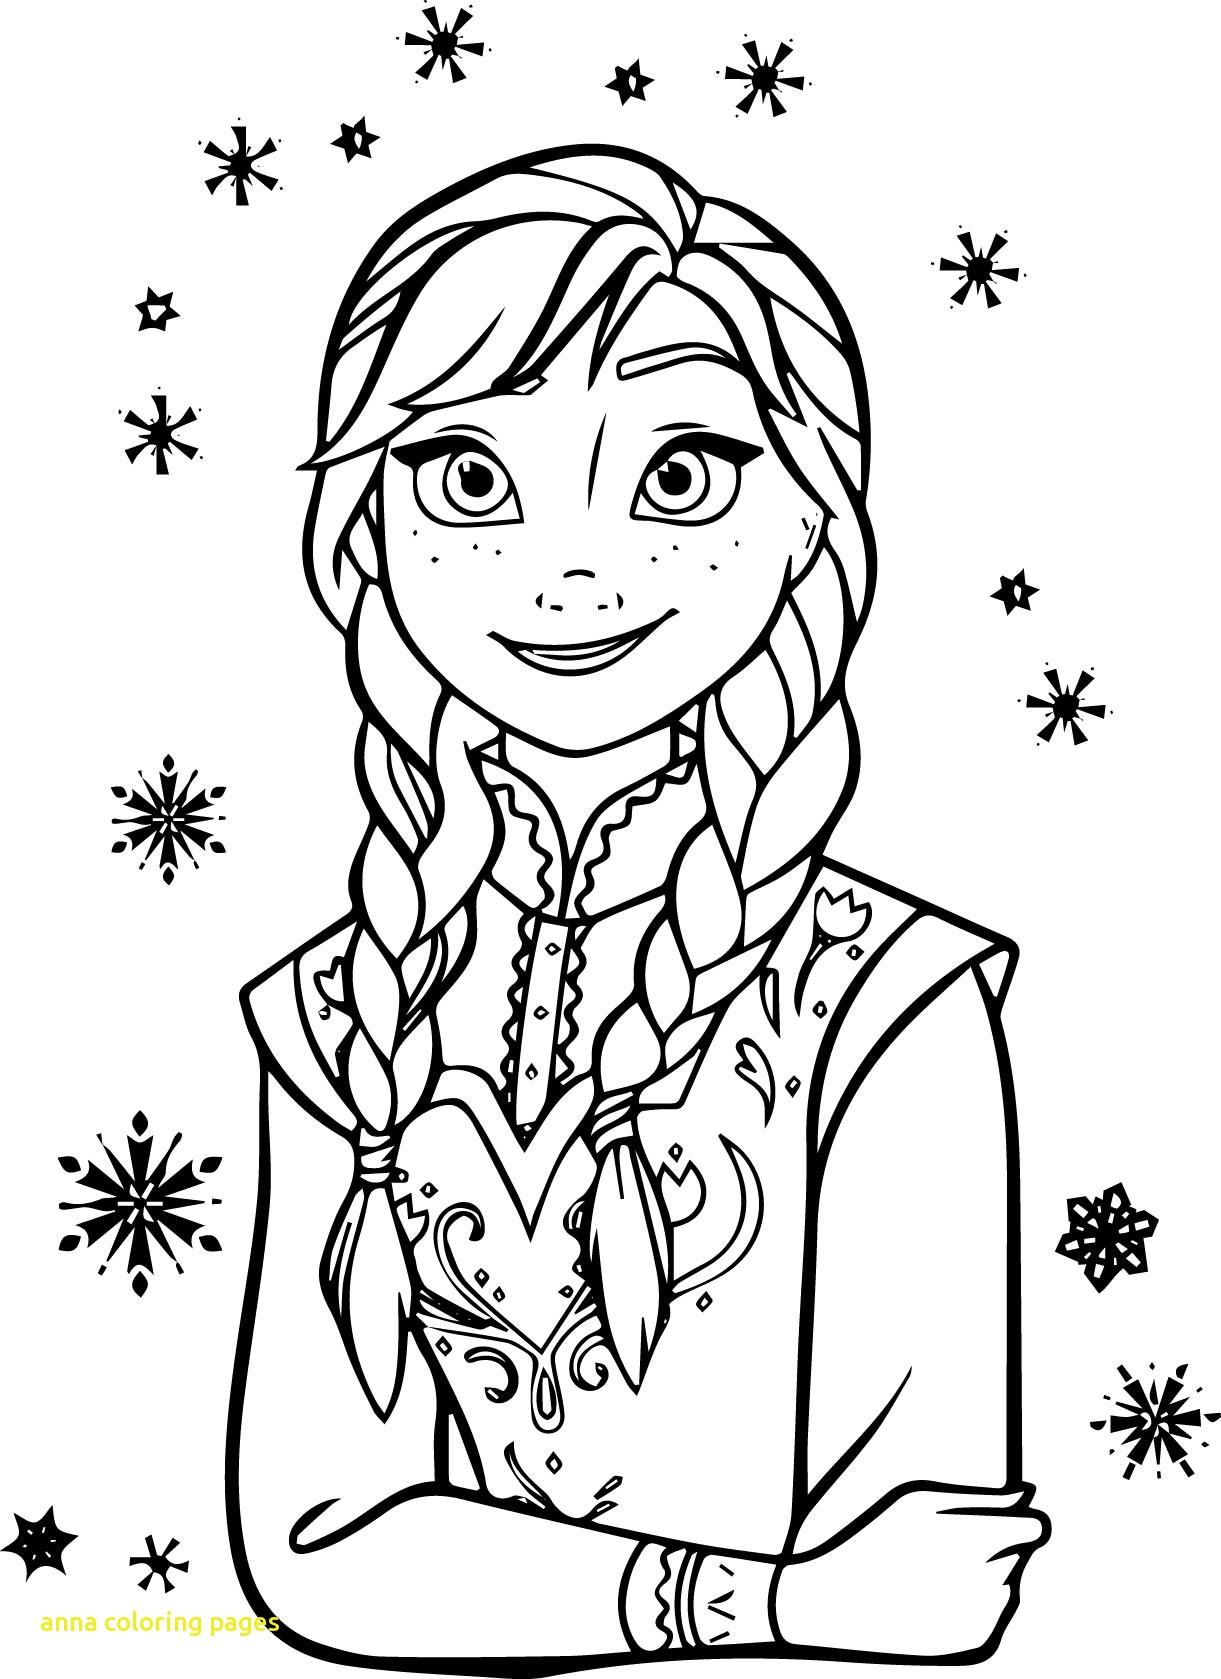 1221x1679 Frozen Elsa Anna Coloring Page On Pages